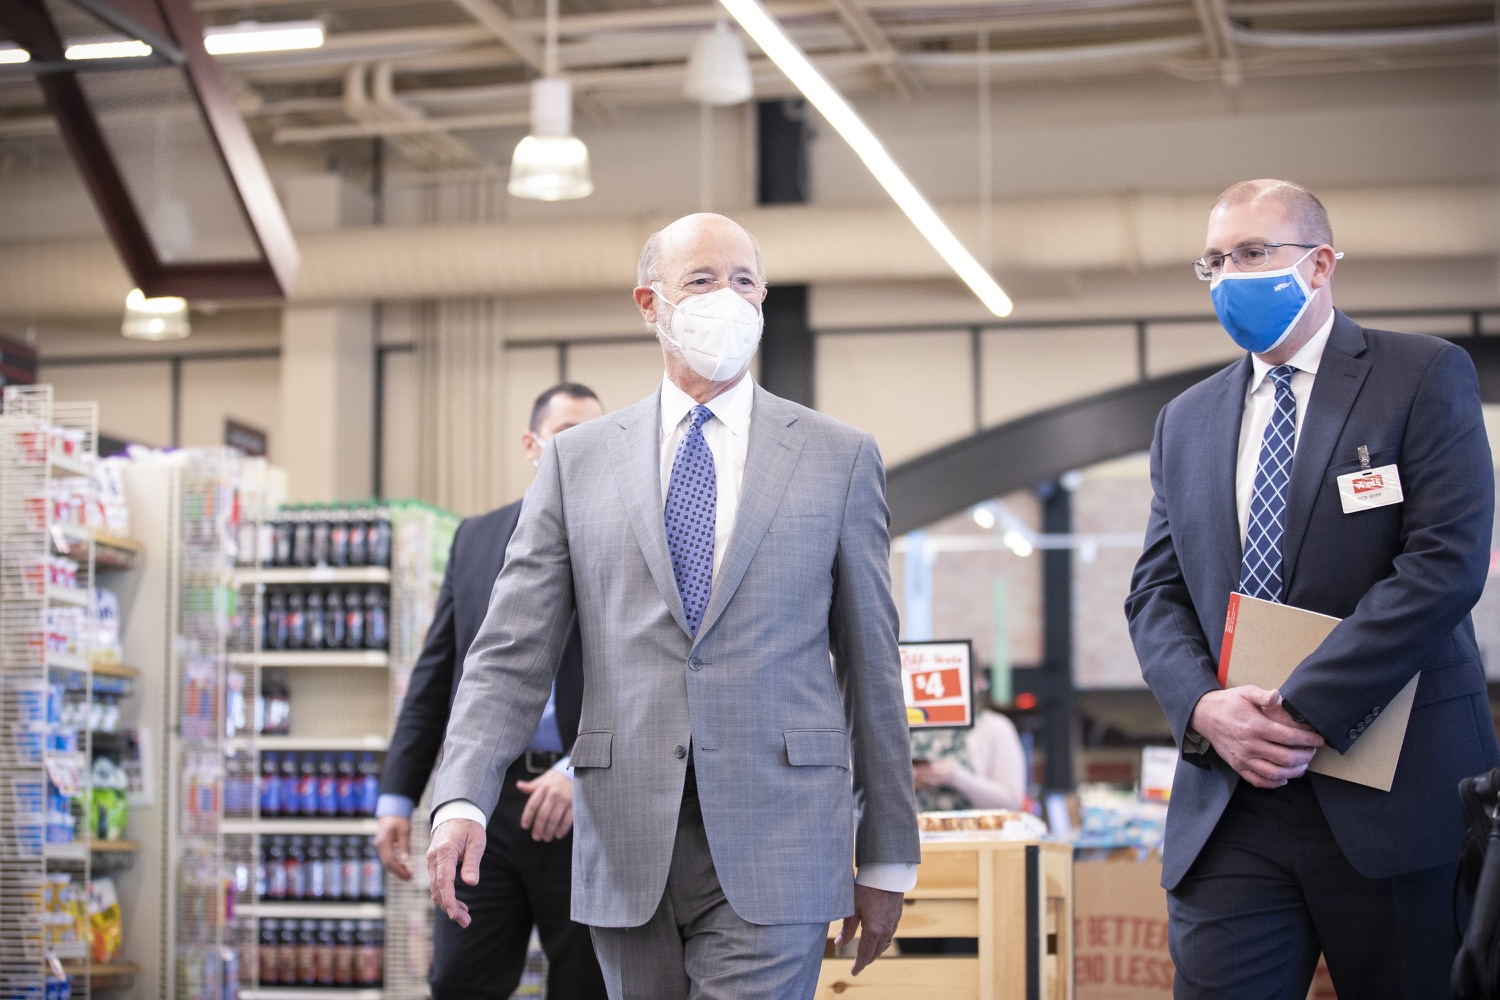 """<a href=""""https://filesource.wostreaming.net/commonwealthofpa/photo/18654_gov_vaccineeligibility_dz_014.jpg"""" target=""""_blank"""">⇣Download Photo<br></a>Pennsylvania Governor Tom Wolf tours of Weis Markets with Rick Seipp, vice president of Weis Pharmacy to see the vaccine administration area.   Gov. Tom Wolf visited Weis Markets in Enola, Cumberland County, to recognize the heroic efforts of Pennsylvania's grocery store workers, who are now eligible for the COVID-19 vaccine.  The governor expressed his gratitude to Pennsylvania's 180,000 grocery store workers, who suddenly became frontline workers as the state took critical steps to mitigate the spread of COVID-19. Grocery stores were deemed life-sustaining businesses, and these employees put their lives at risk to ensure their stores remained open to the public. APRIL 06, 2021 - ENOLA, PA.."""